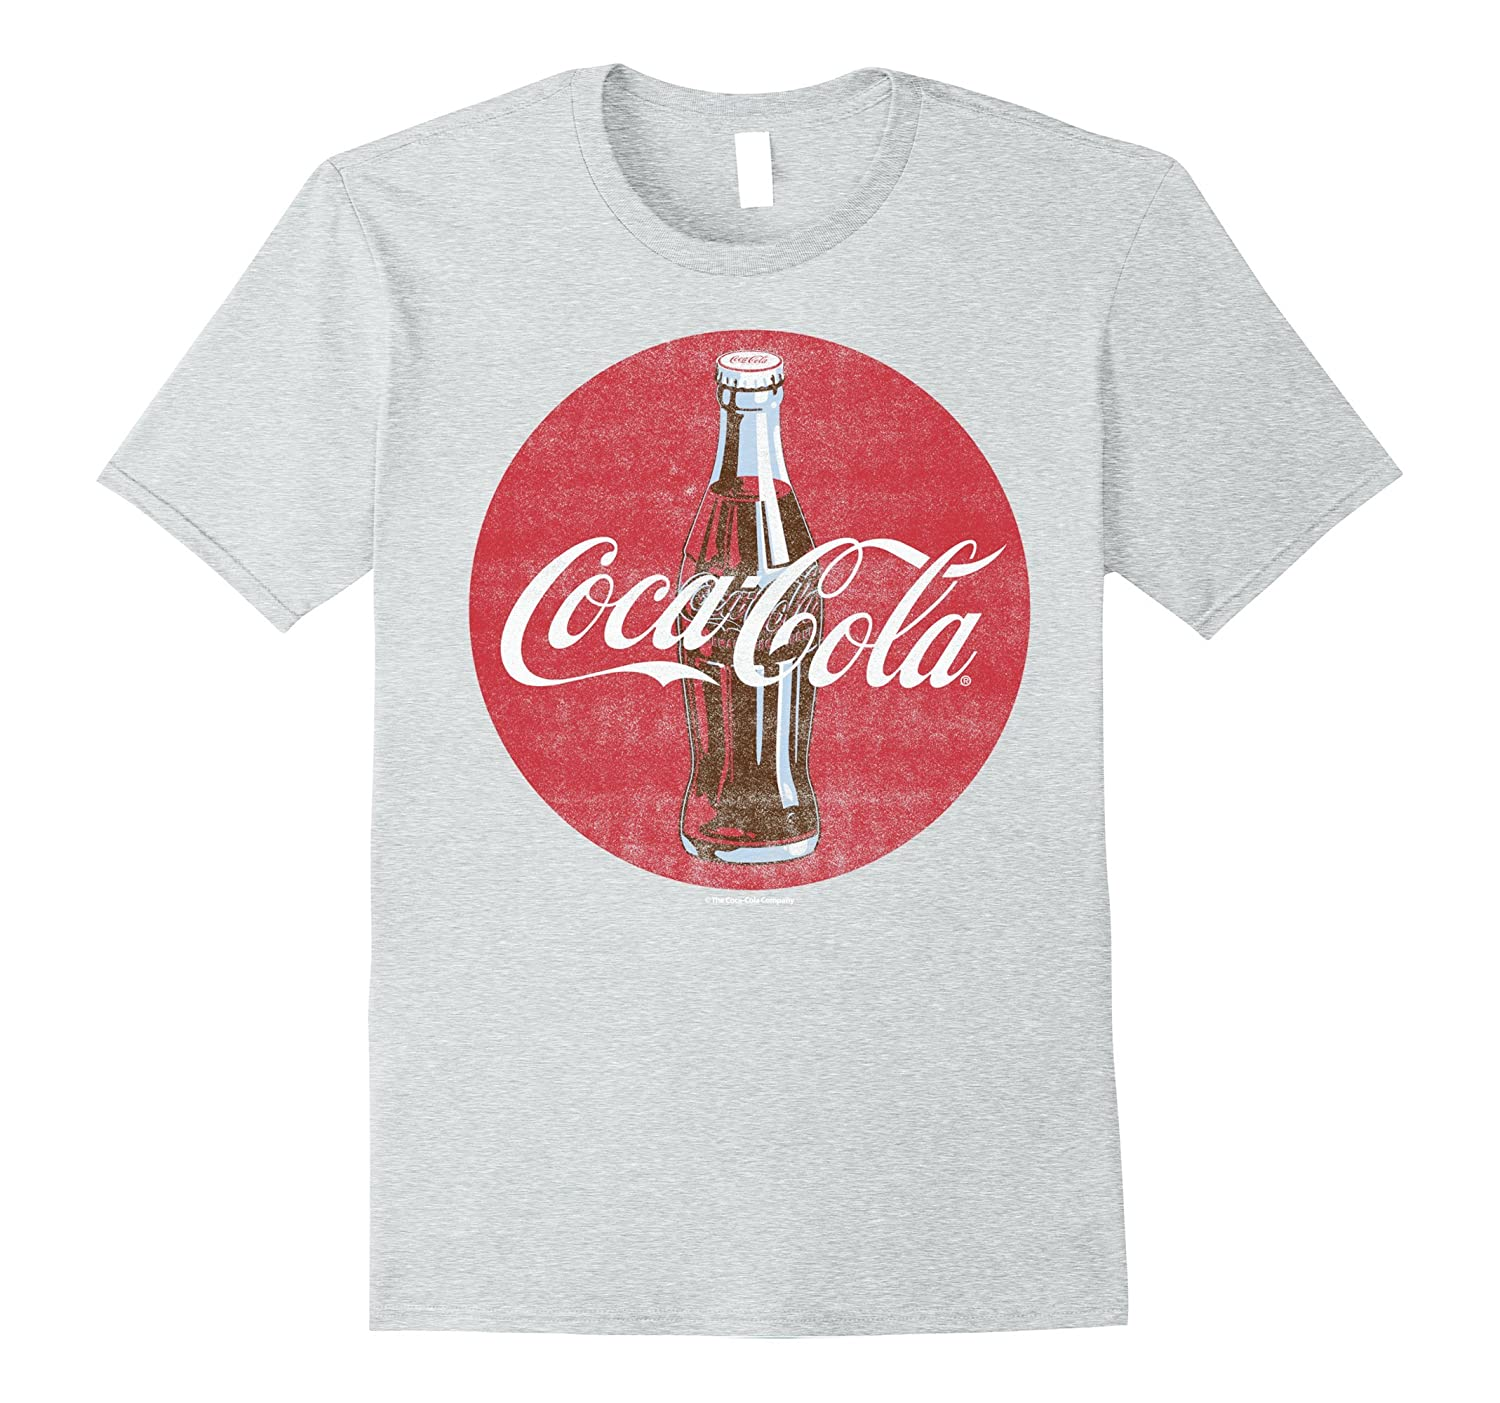 842cf925f Coca-Cola Vintage Retro Bottle Disc Logo Graphic T-Shirt-ANZ ...